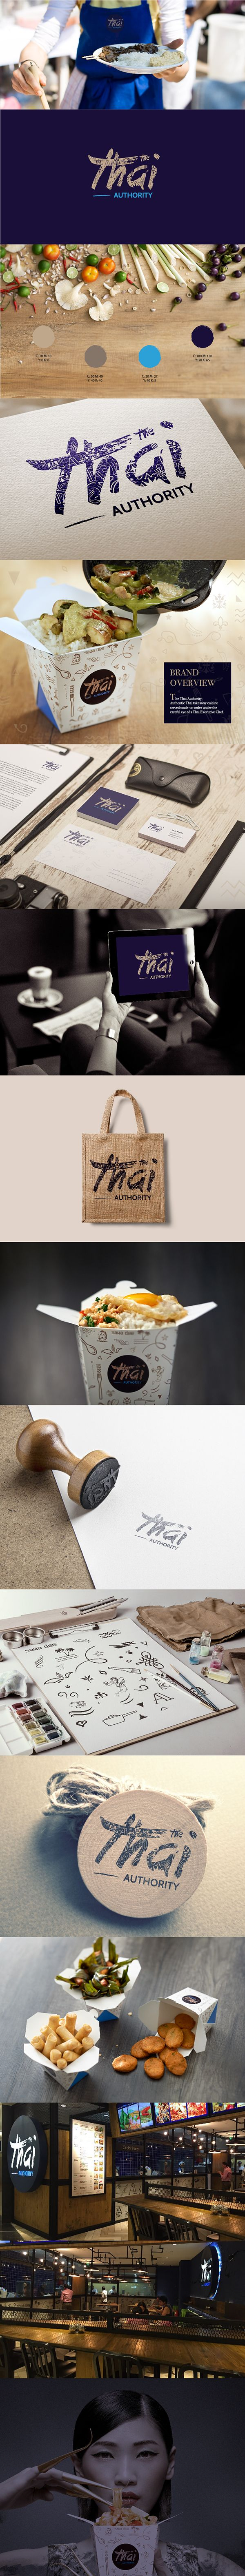 Thai Authority Restaurant on Behance by Agata Dondzik. I'm ready for Thai now PD